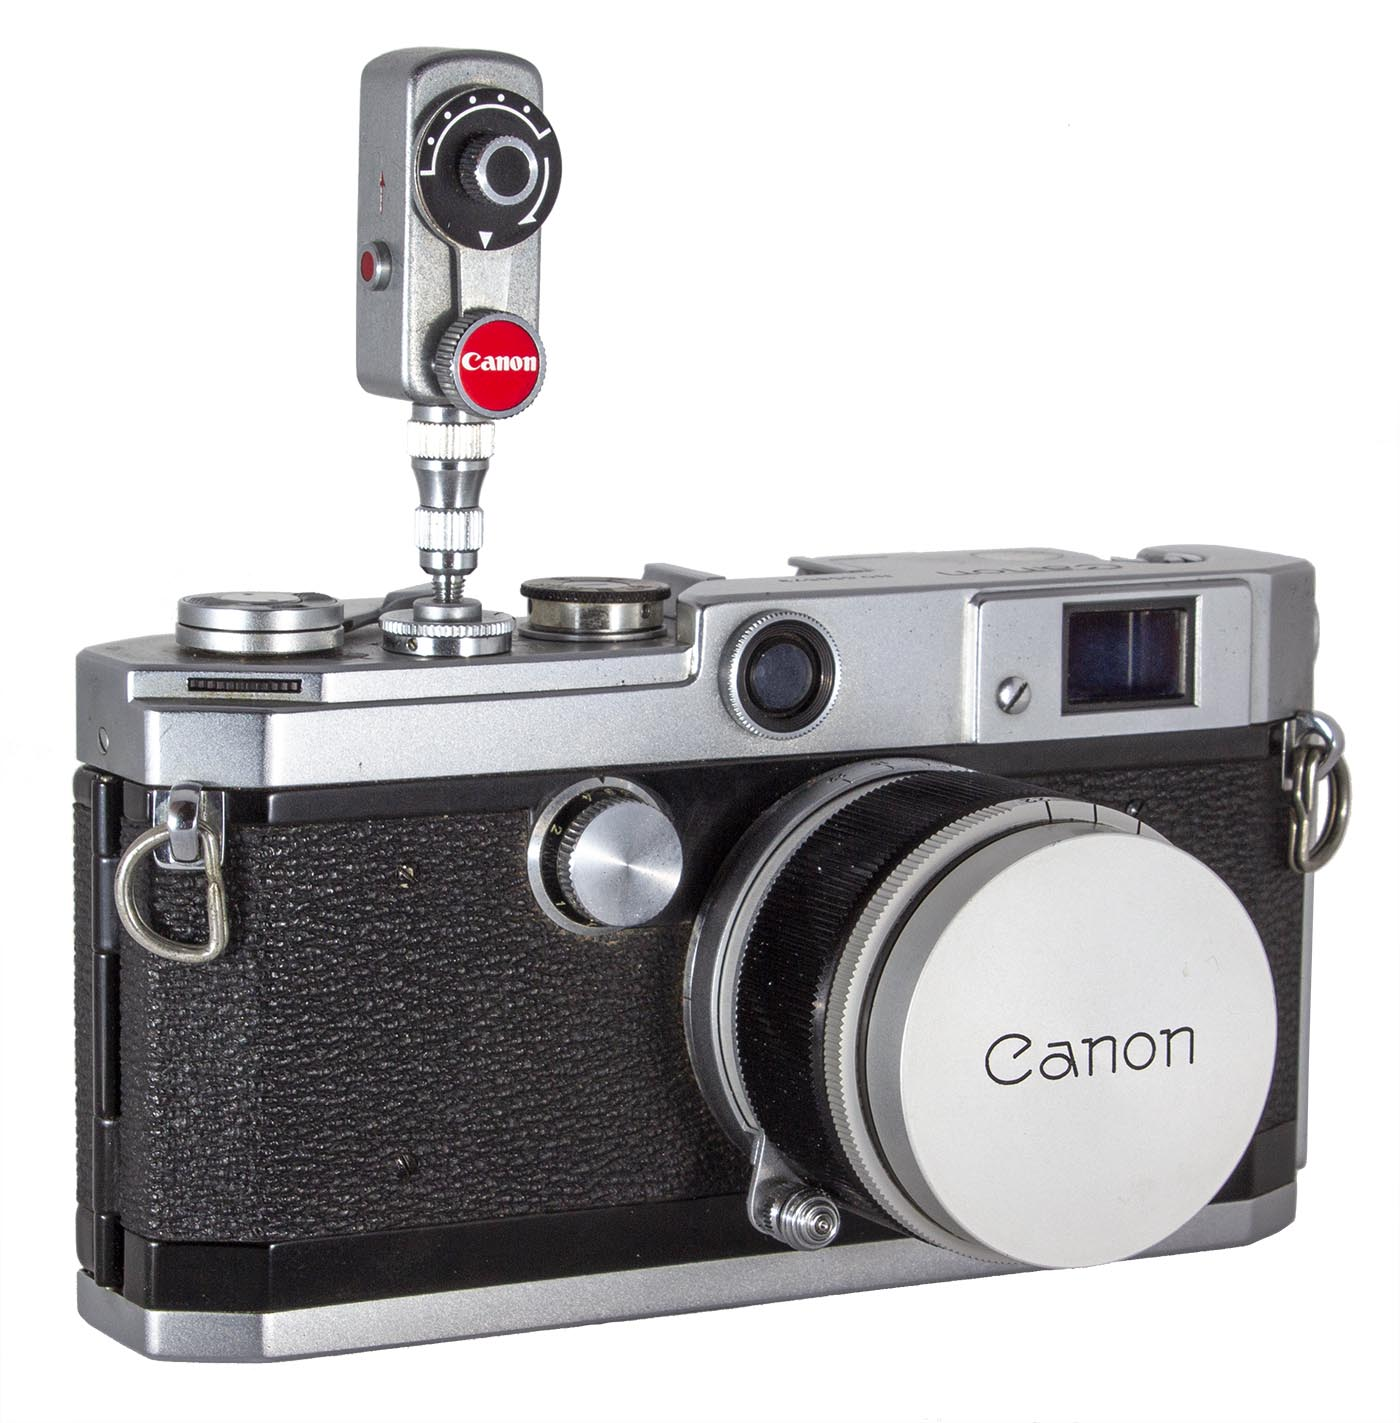 Canon Self-Timer 6